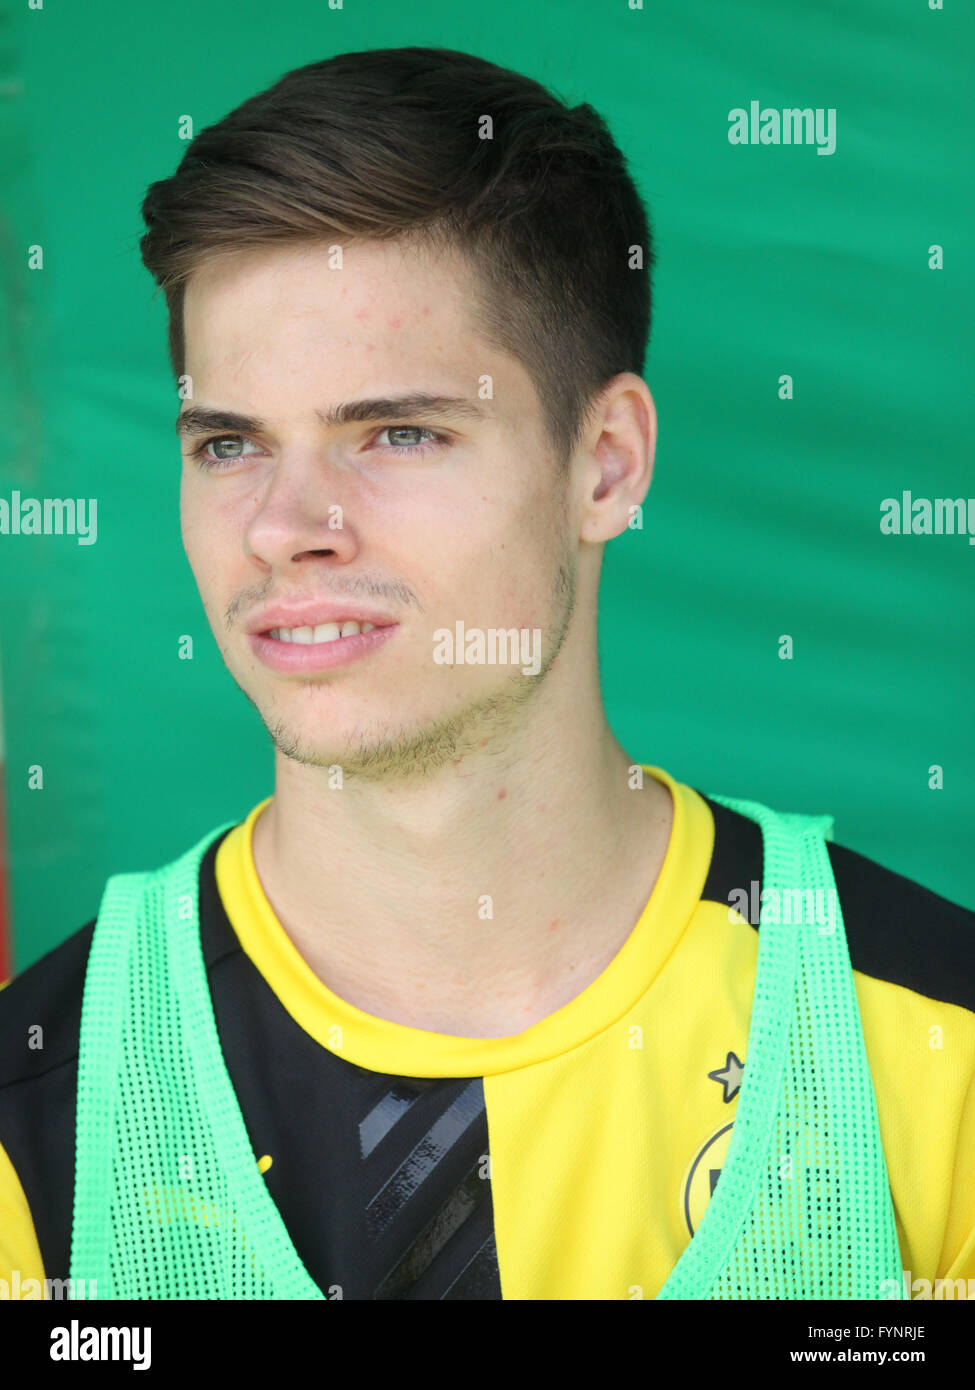 Julian Weigl Borussia Dortmund Stock Royalty Free Image